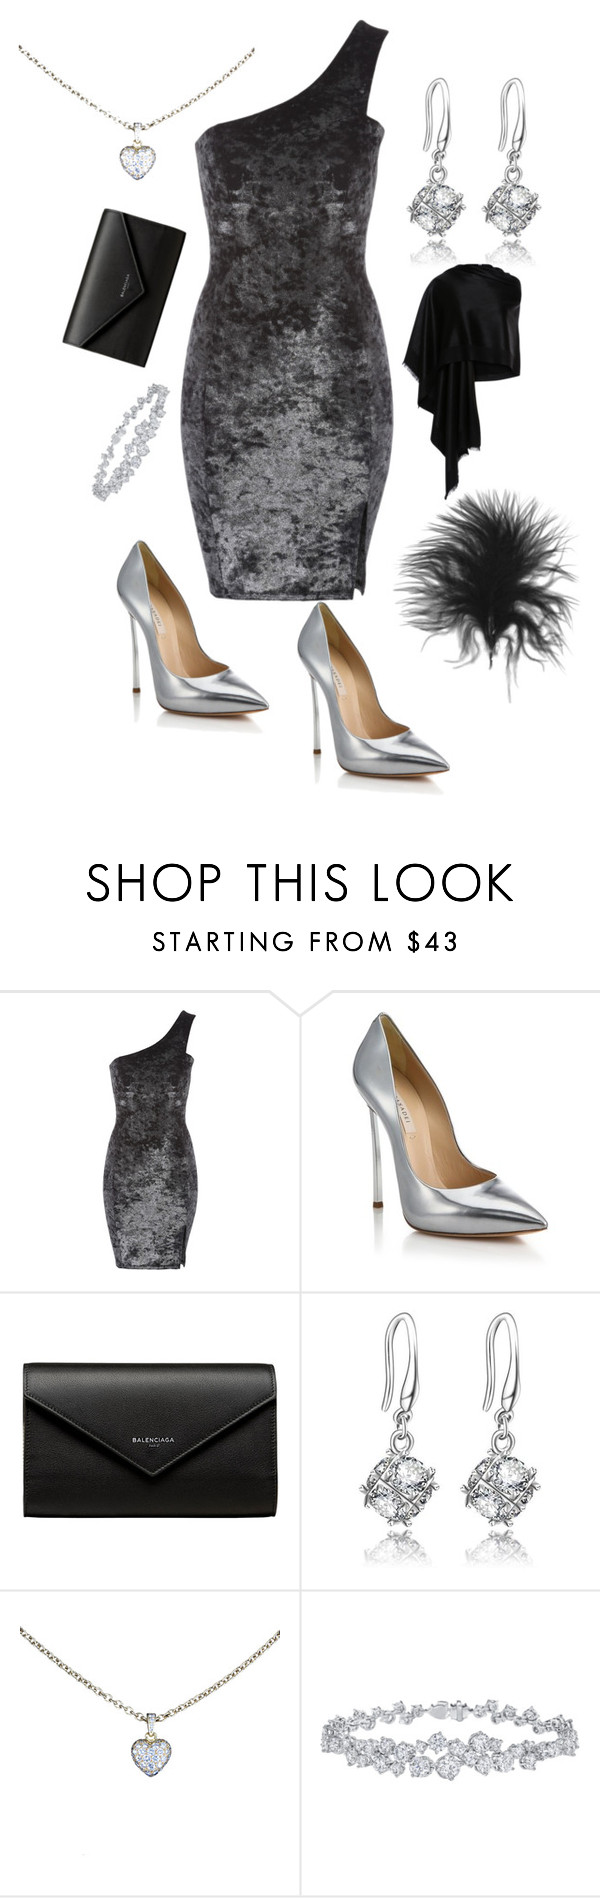 """Untitled #603"" by stylemirror ❤ liked on Polyvore featuring Casadei, Balenciaga, Cartier, Harry Winston and Bajra"